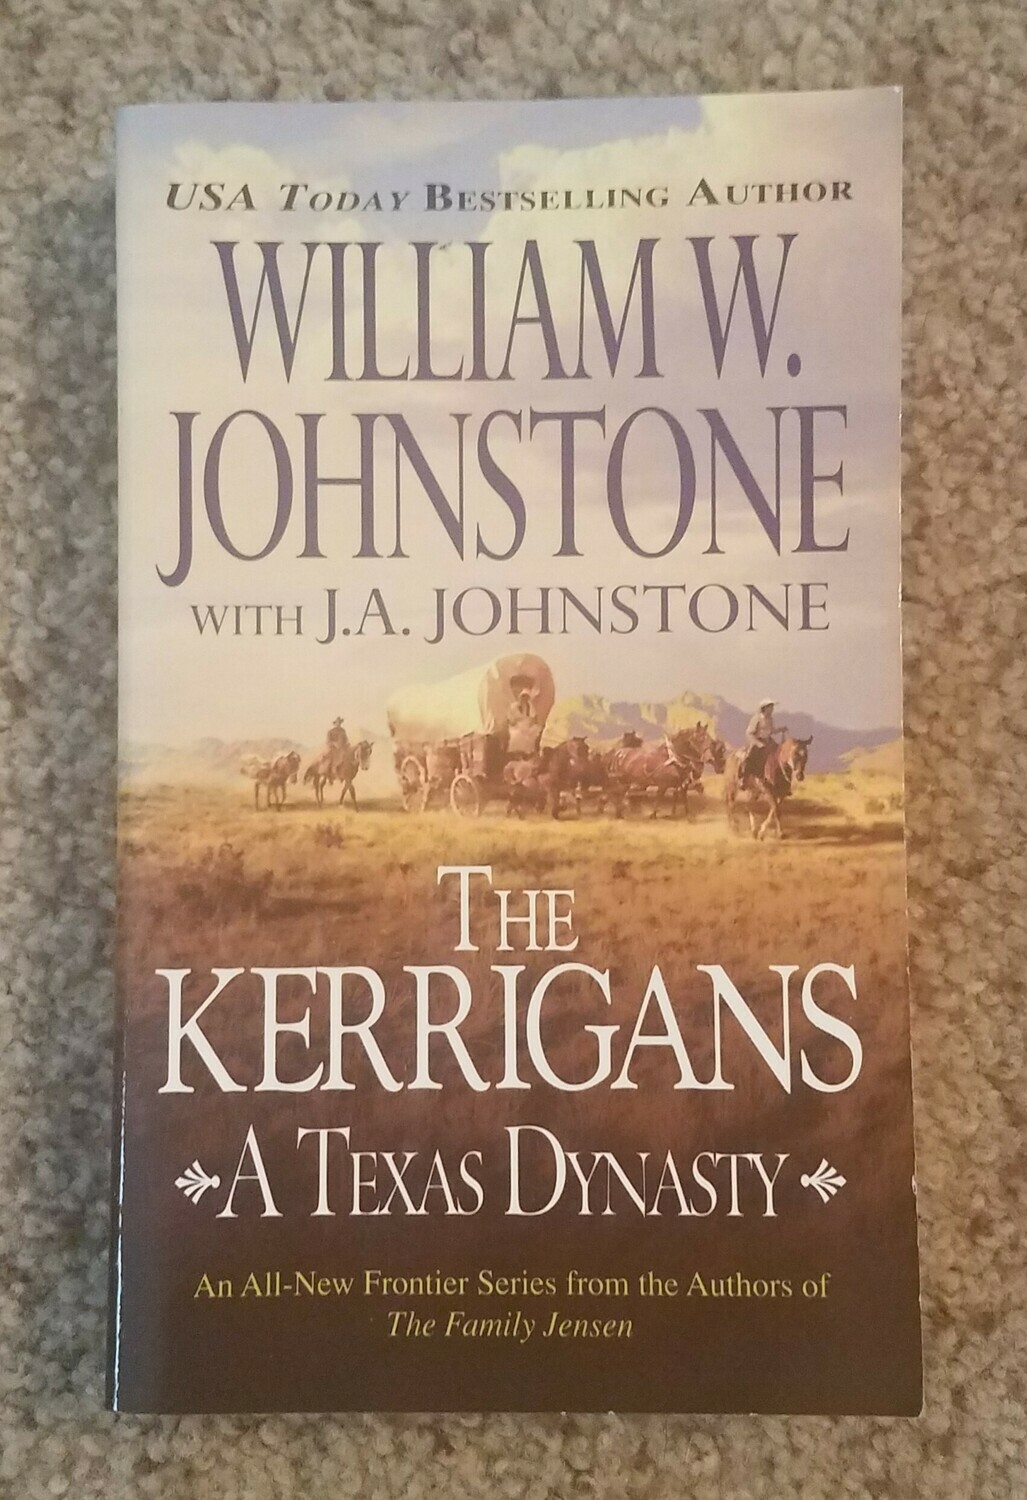 The Kerrigans: A Texas Dynasty by William W. Johnstone with J.A. Johnstone